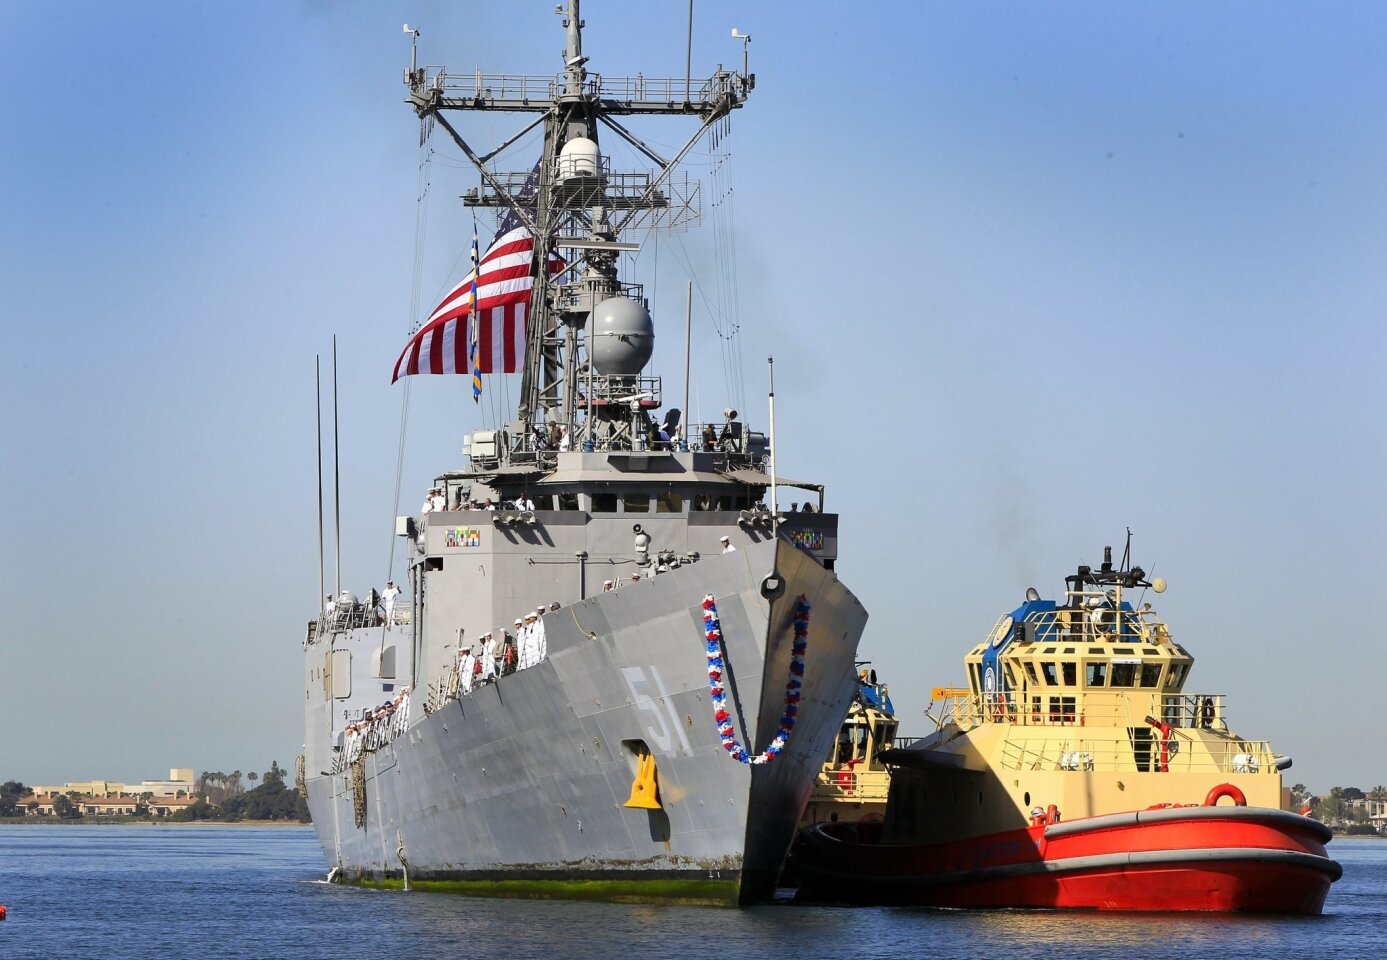 The USS Gary, the last operational frigate on the West Coast arrives at Naval Base San Diego, completing a seven-month deployment, its last before being decommissioned in August.